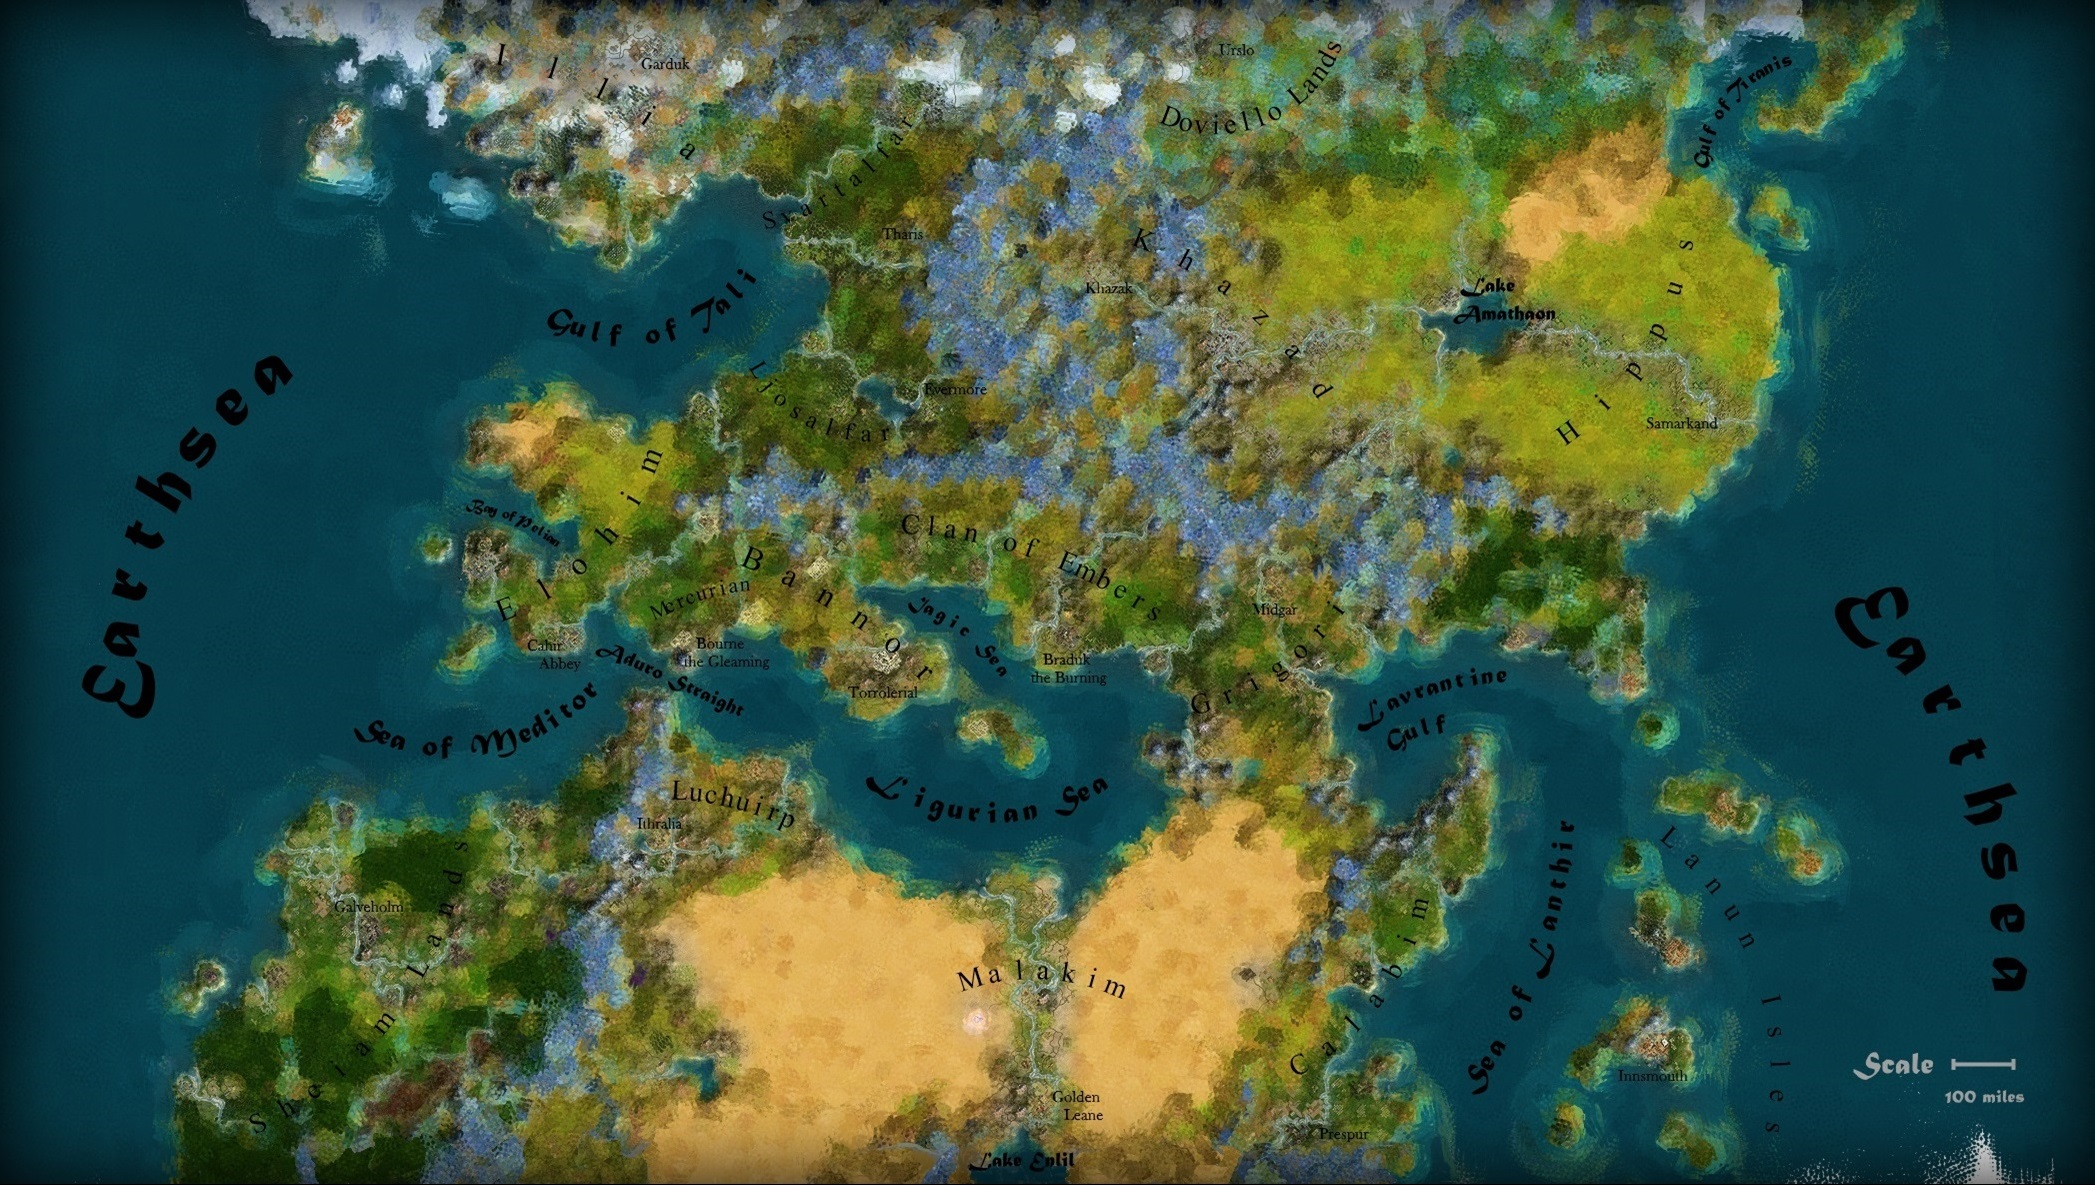 Arcanearth-World-Map_OP.jpg